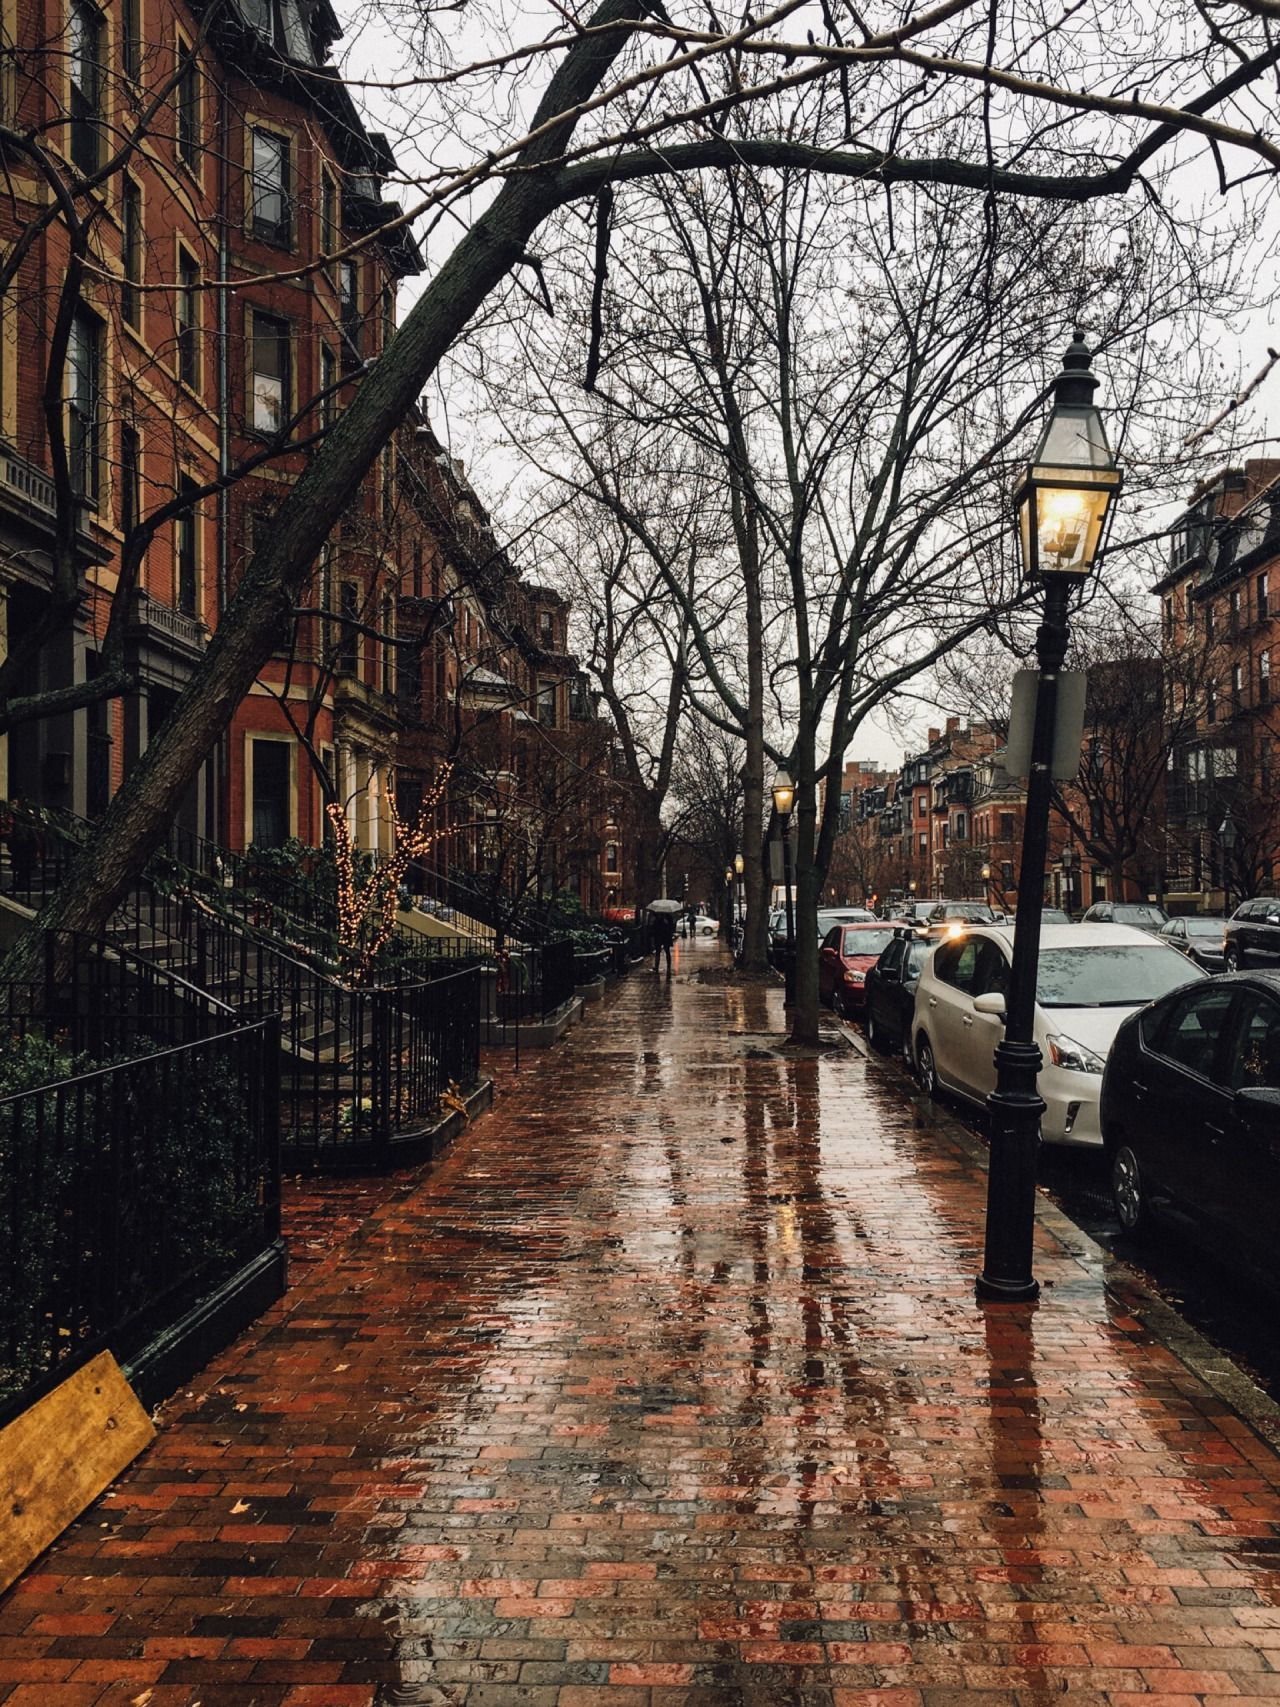 Cozy Fall Wallpaper Image Result For Rainy Boston Tumblr Everything Fall